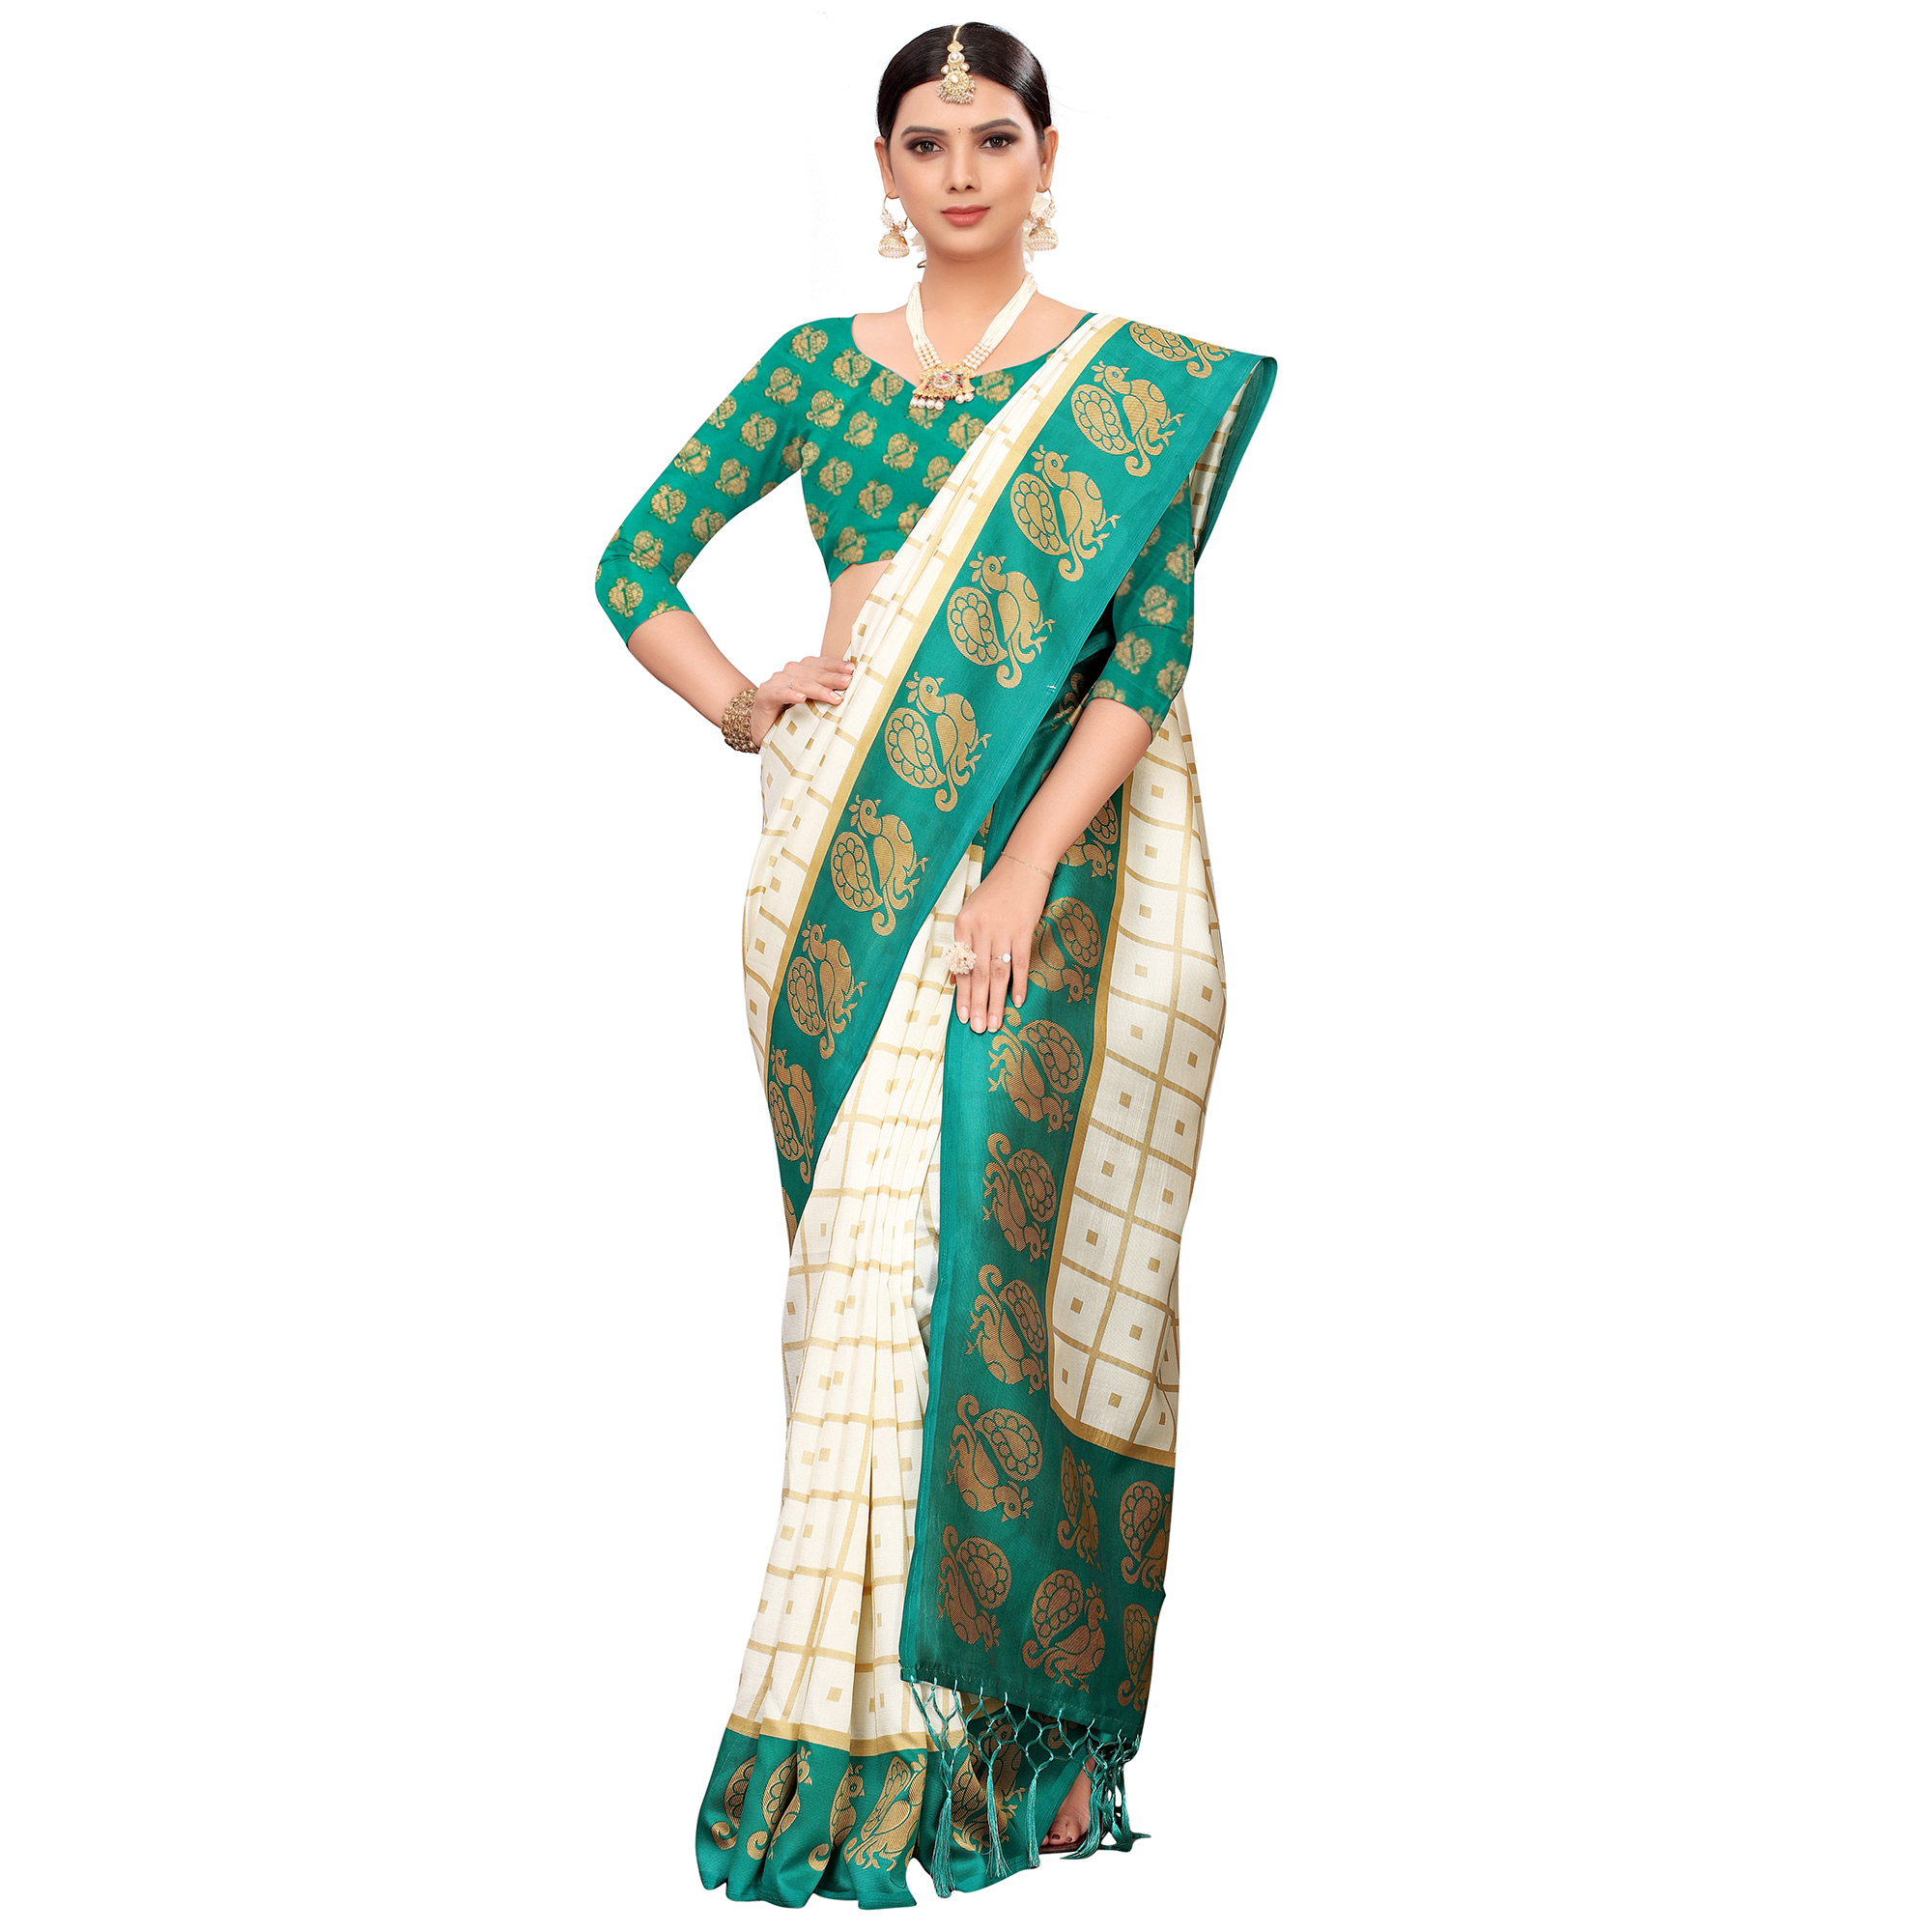 Flattering Off White-Turquoise Green Colored Festive Wear Printed Mysore Silk Saree